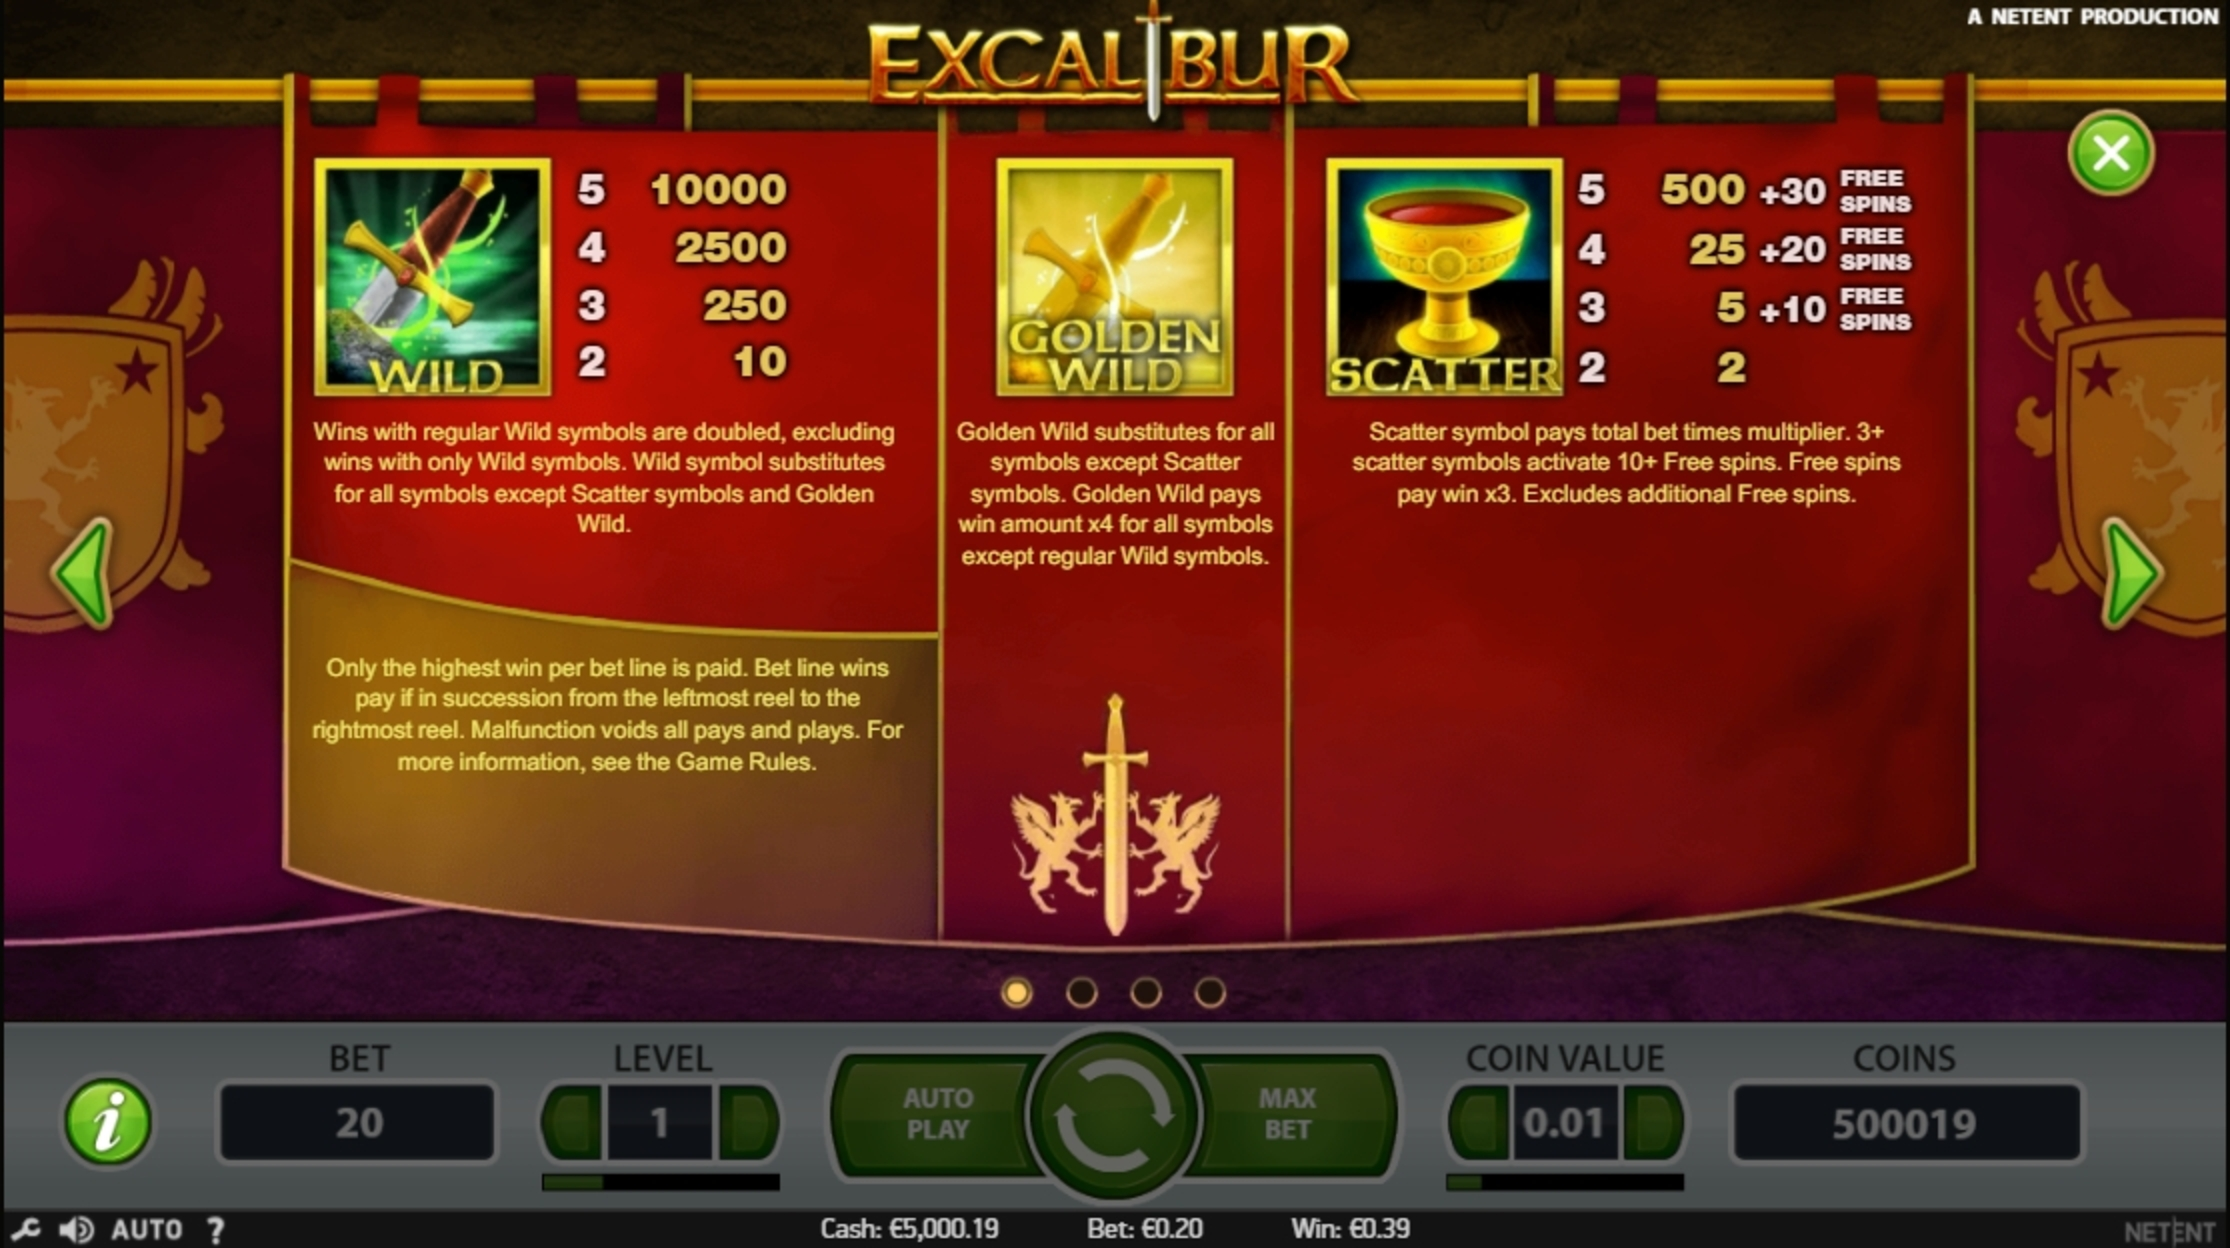 Info of Excalibur Slot Game by NetEnt